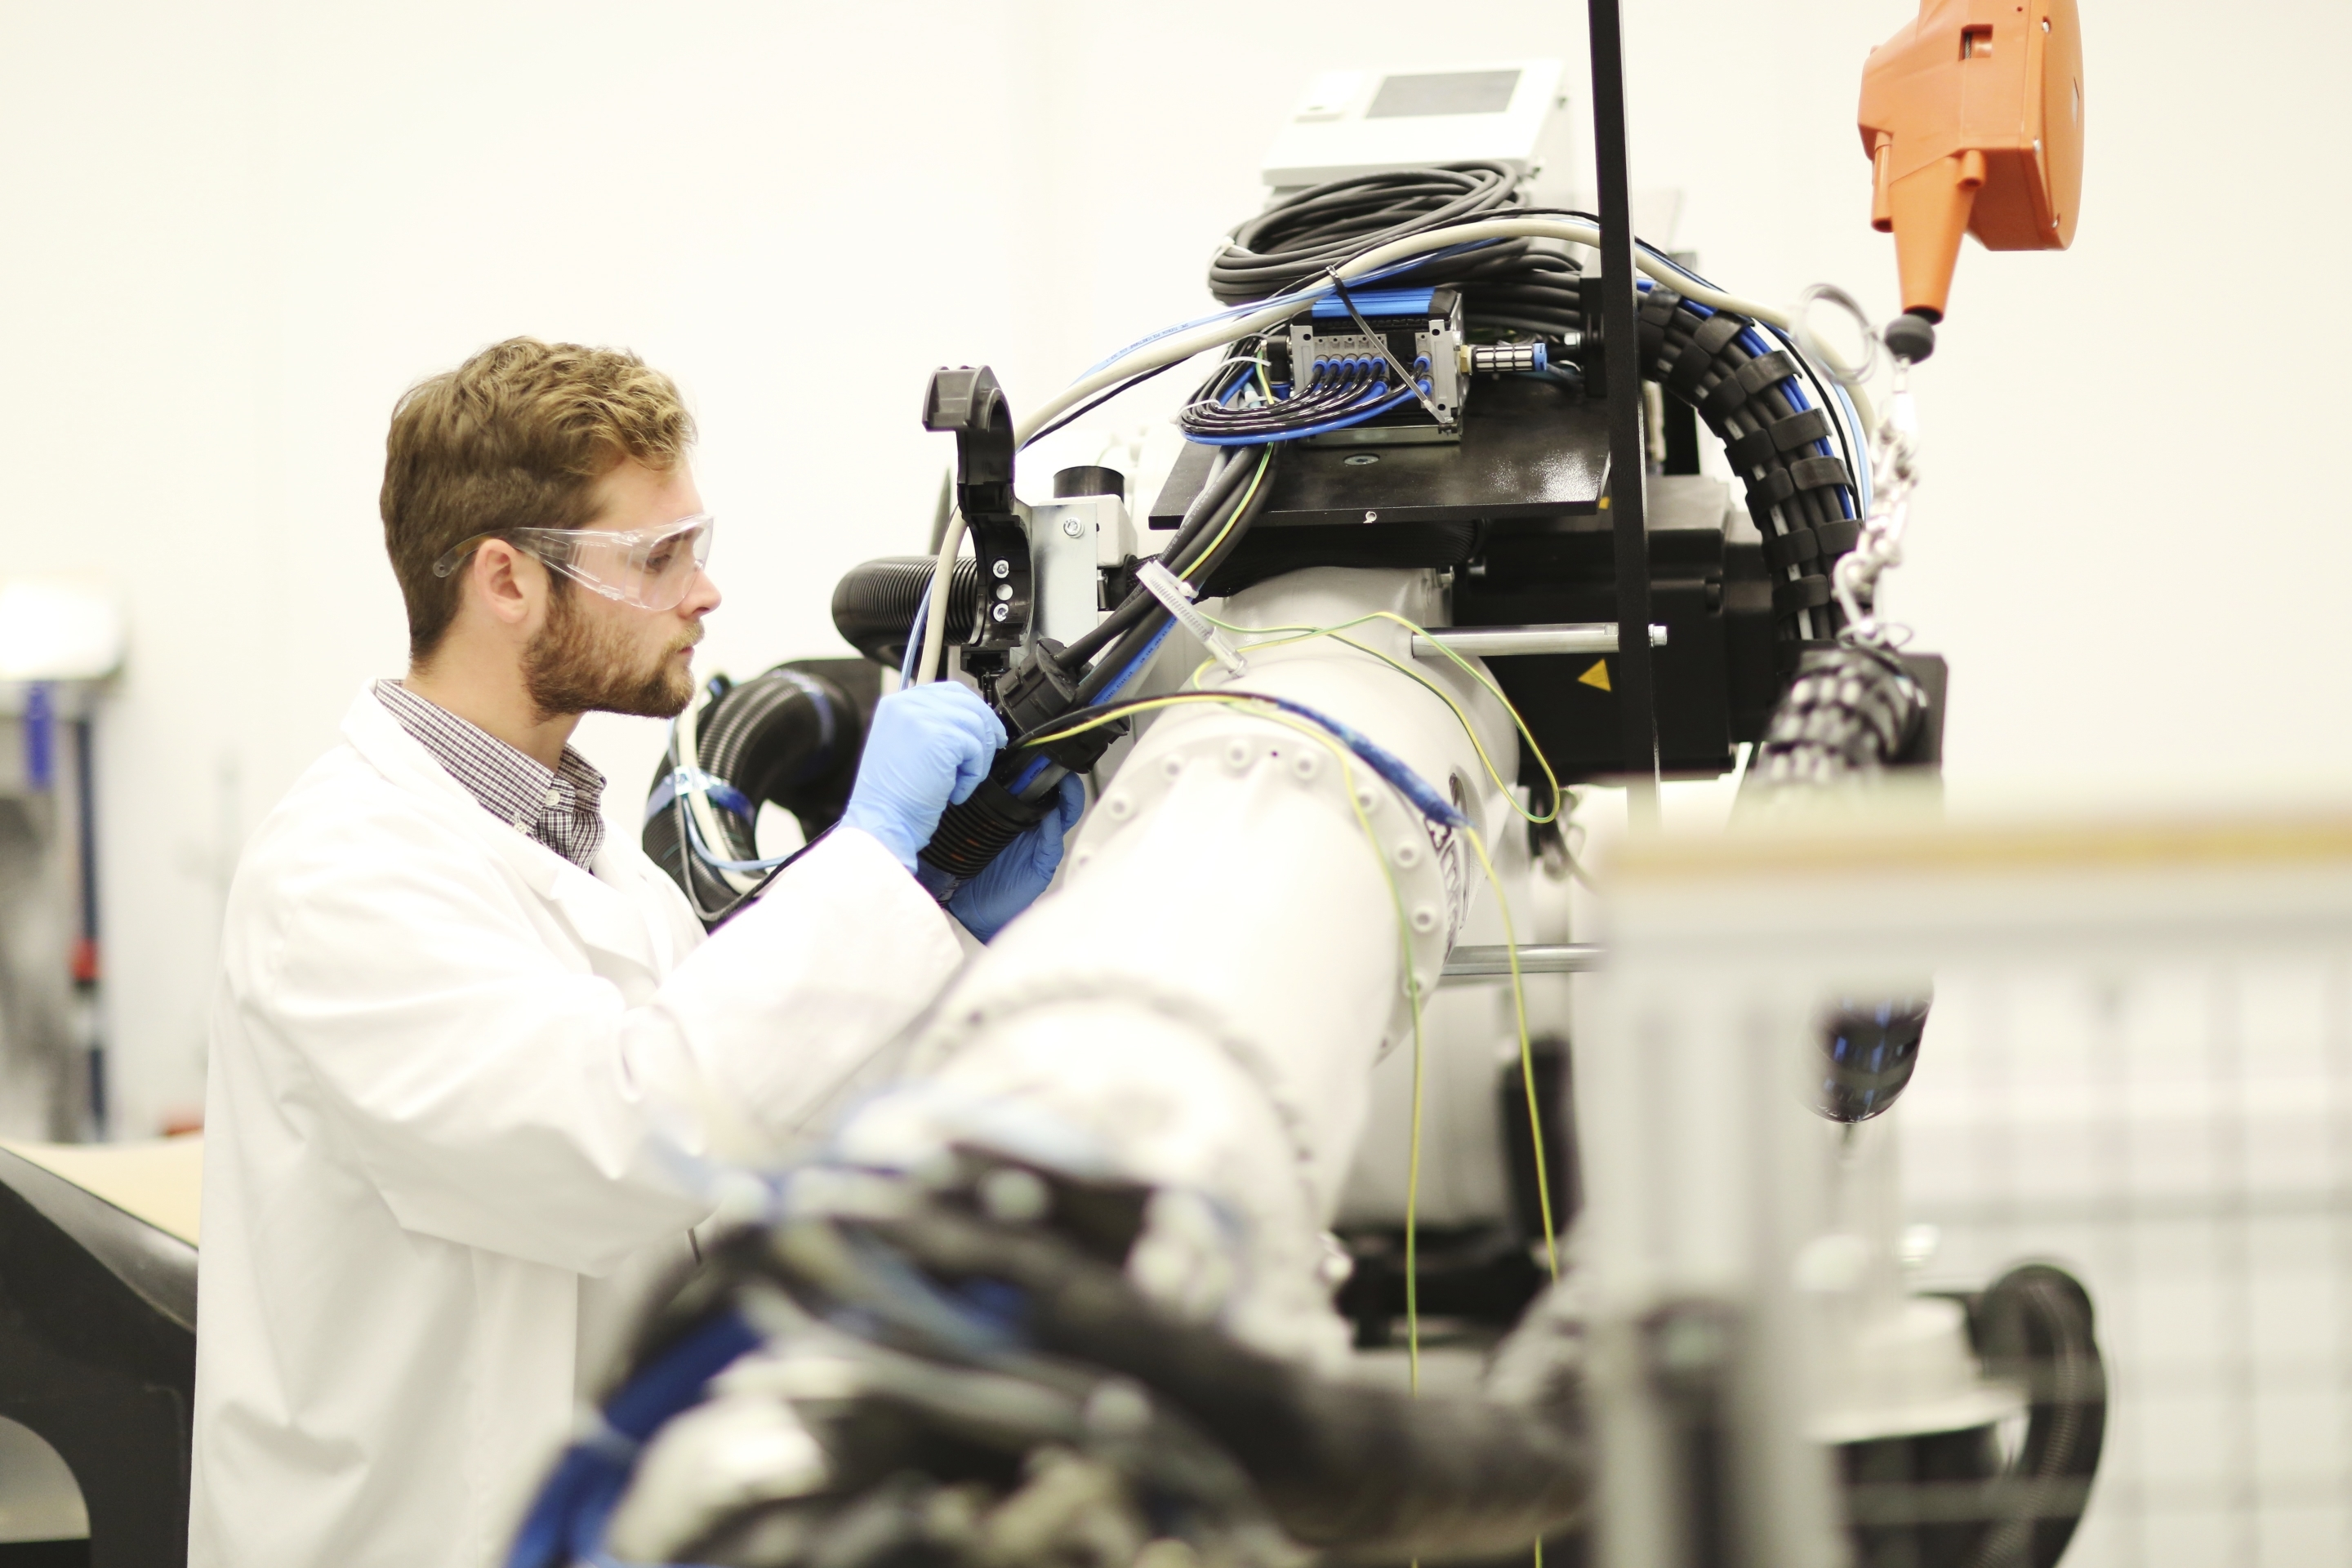 Composites are playing a greater role in oil and gas